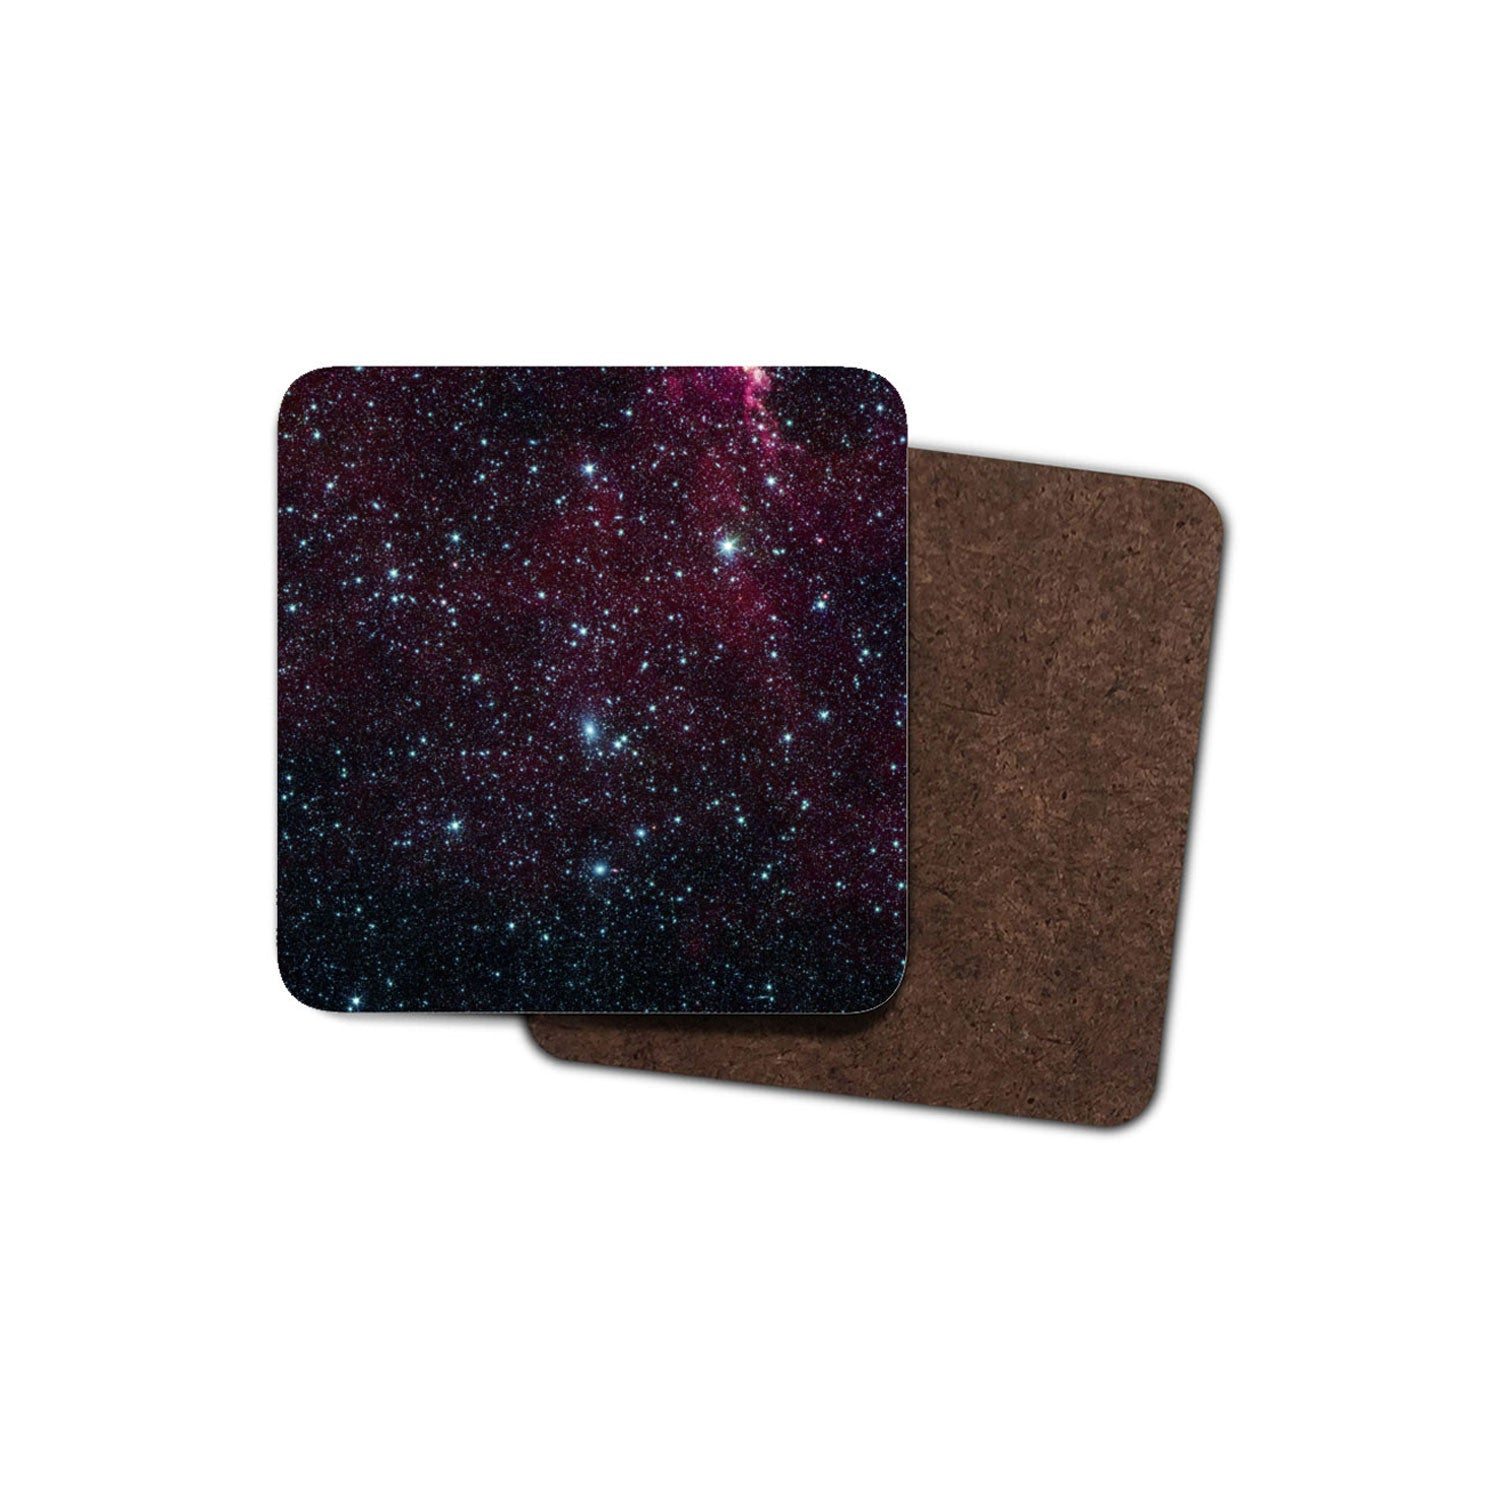 black-red drinks coaster showing NASA photo of Perseus-Pisces galaxy supercluster